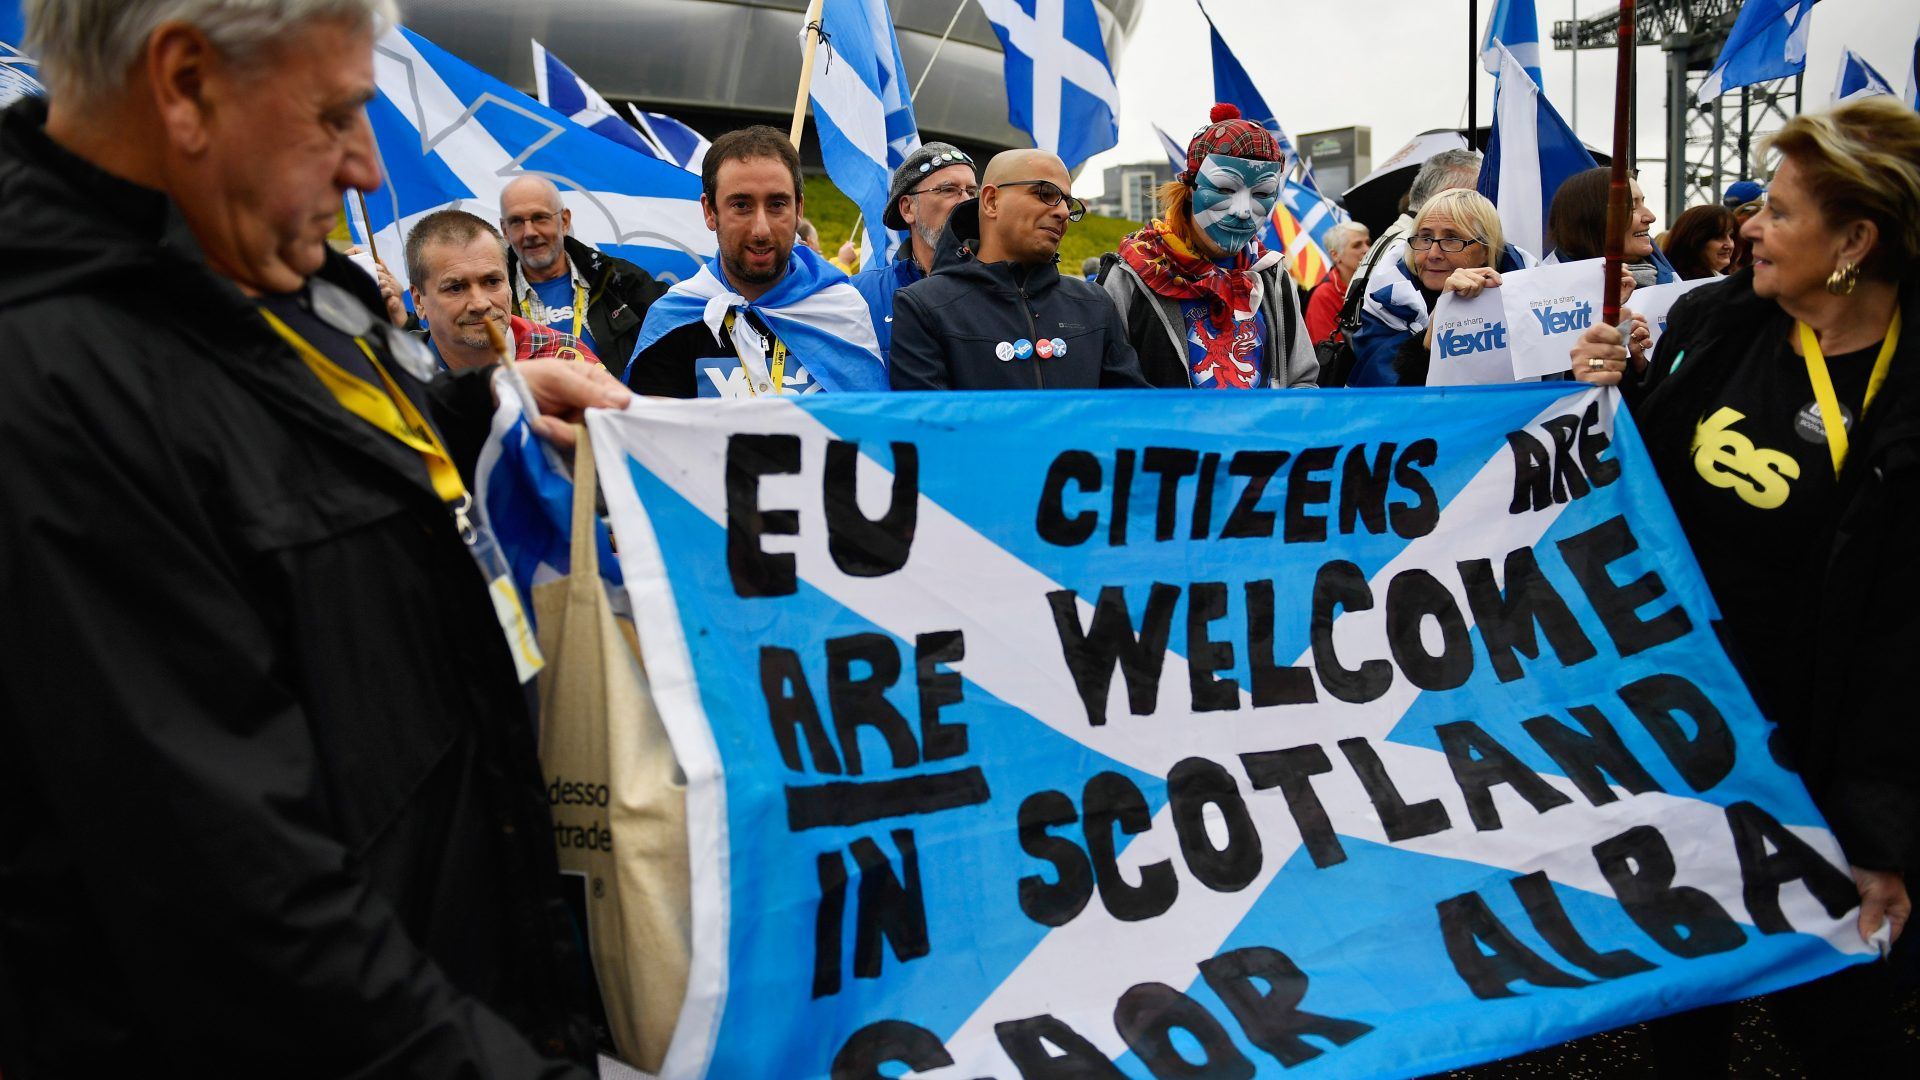 Independence supporters hold up a banner stating that EU citizens are welcome in Scotland as they take part in a rally outside the Scottish National Party conference on October 15, 2016 in Glasgow, Scotland. Nicola Sturgeon is set to end her party's conference with a speech about a 'new political era' in the UK, stating that Scotland is 'open for business' in the post-Brexit era while also speaking about domestic policy priorities.